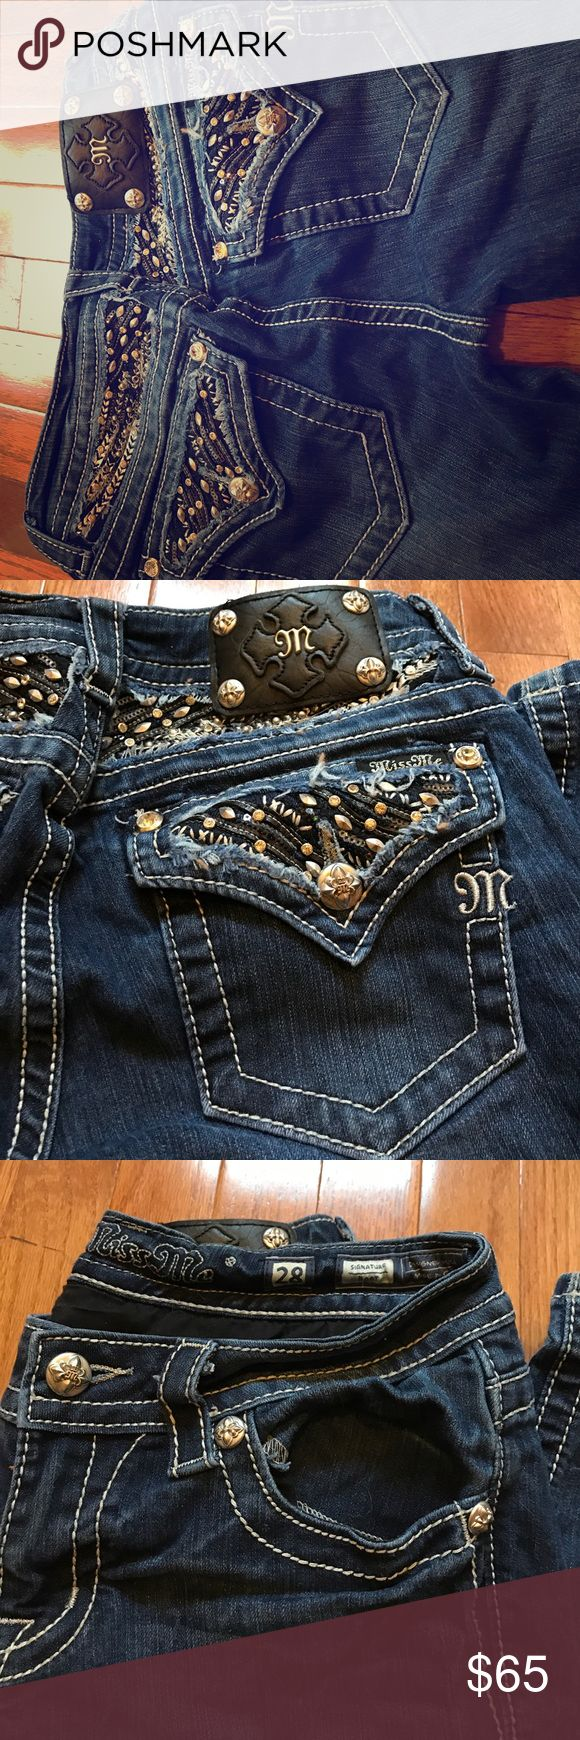 Miss me jeans women's size 28 Miss me jeans women's size 28 and bought these from the buckle store. Dark denim wash and black silver glitz pockets with no flaws and barely worn. Just never wear them anymore. Miss Me Jeans Boot Cut